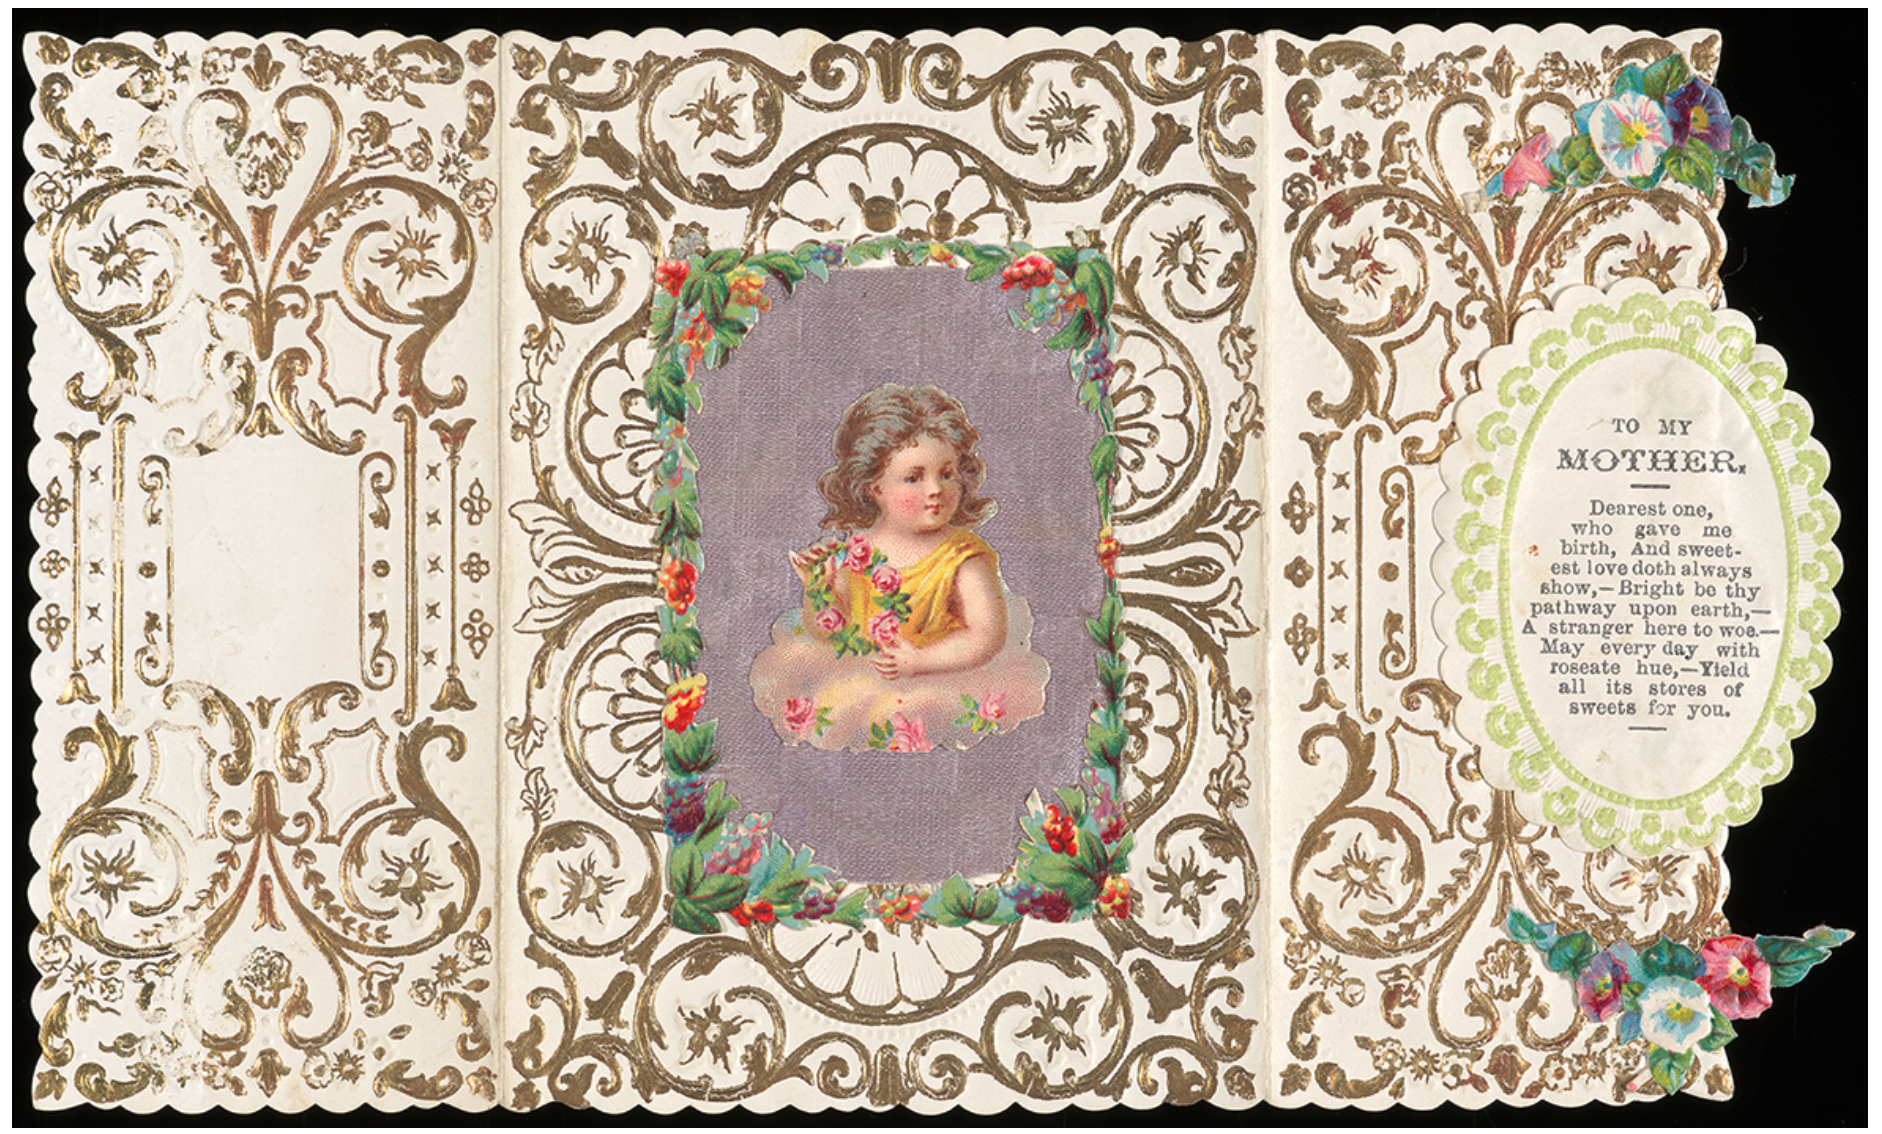 Above: A card dating to around 1860 which is within The Postal Museum's archives which is effectively a Mother's Day card.